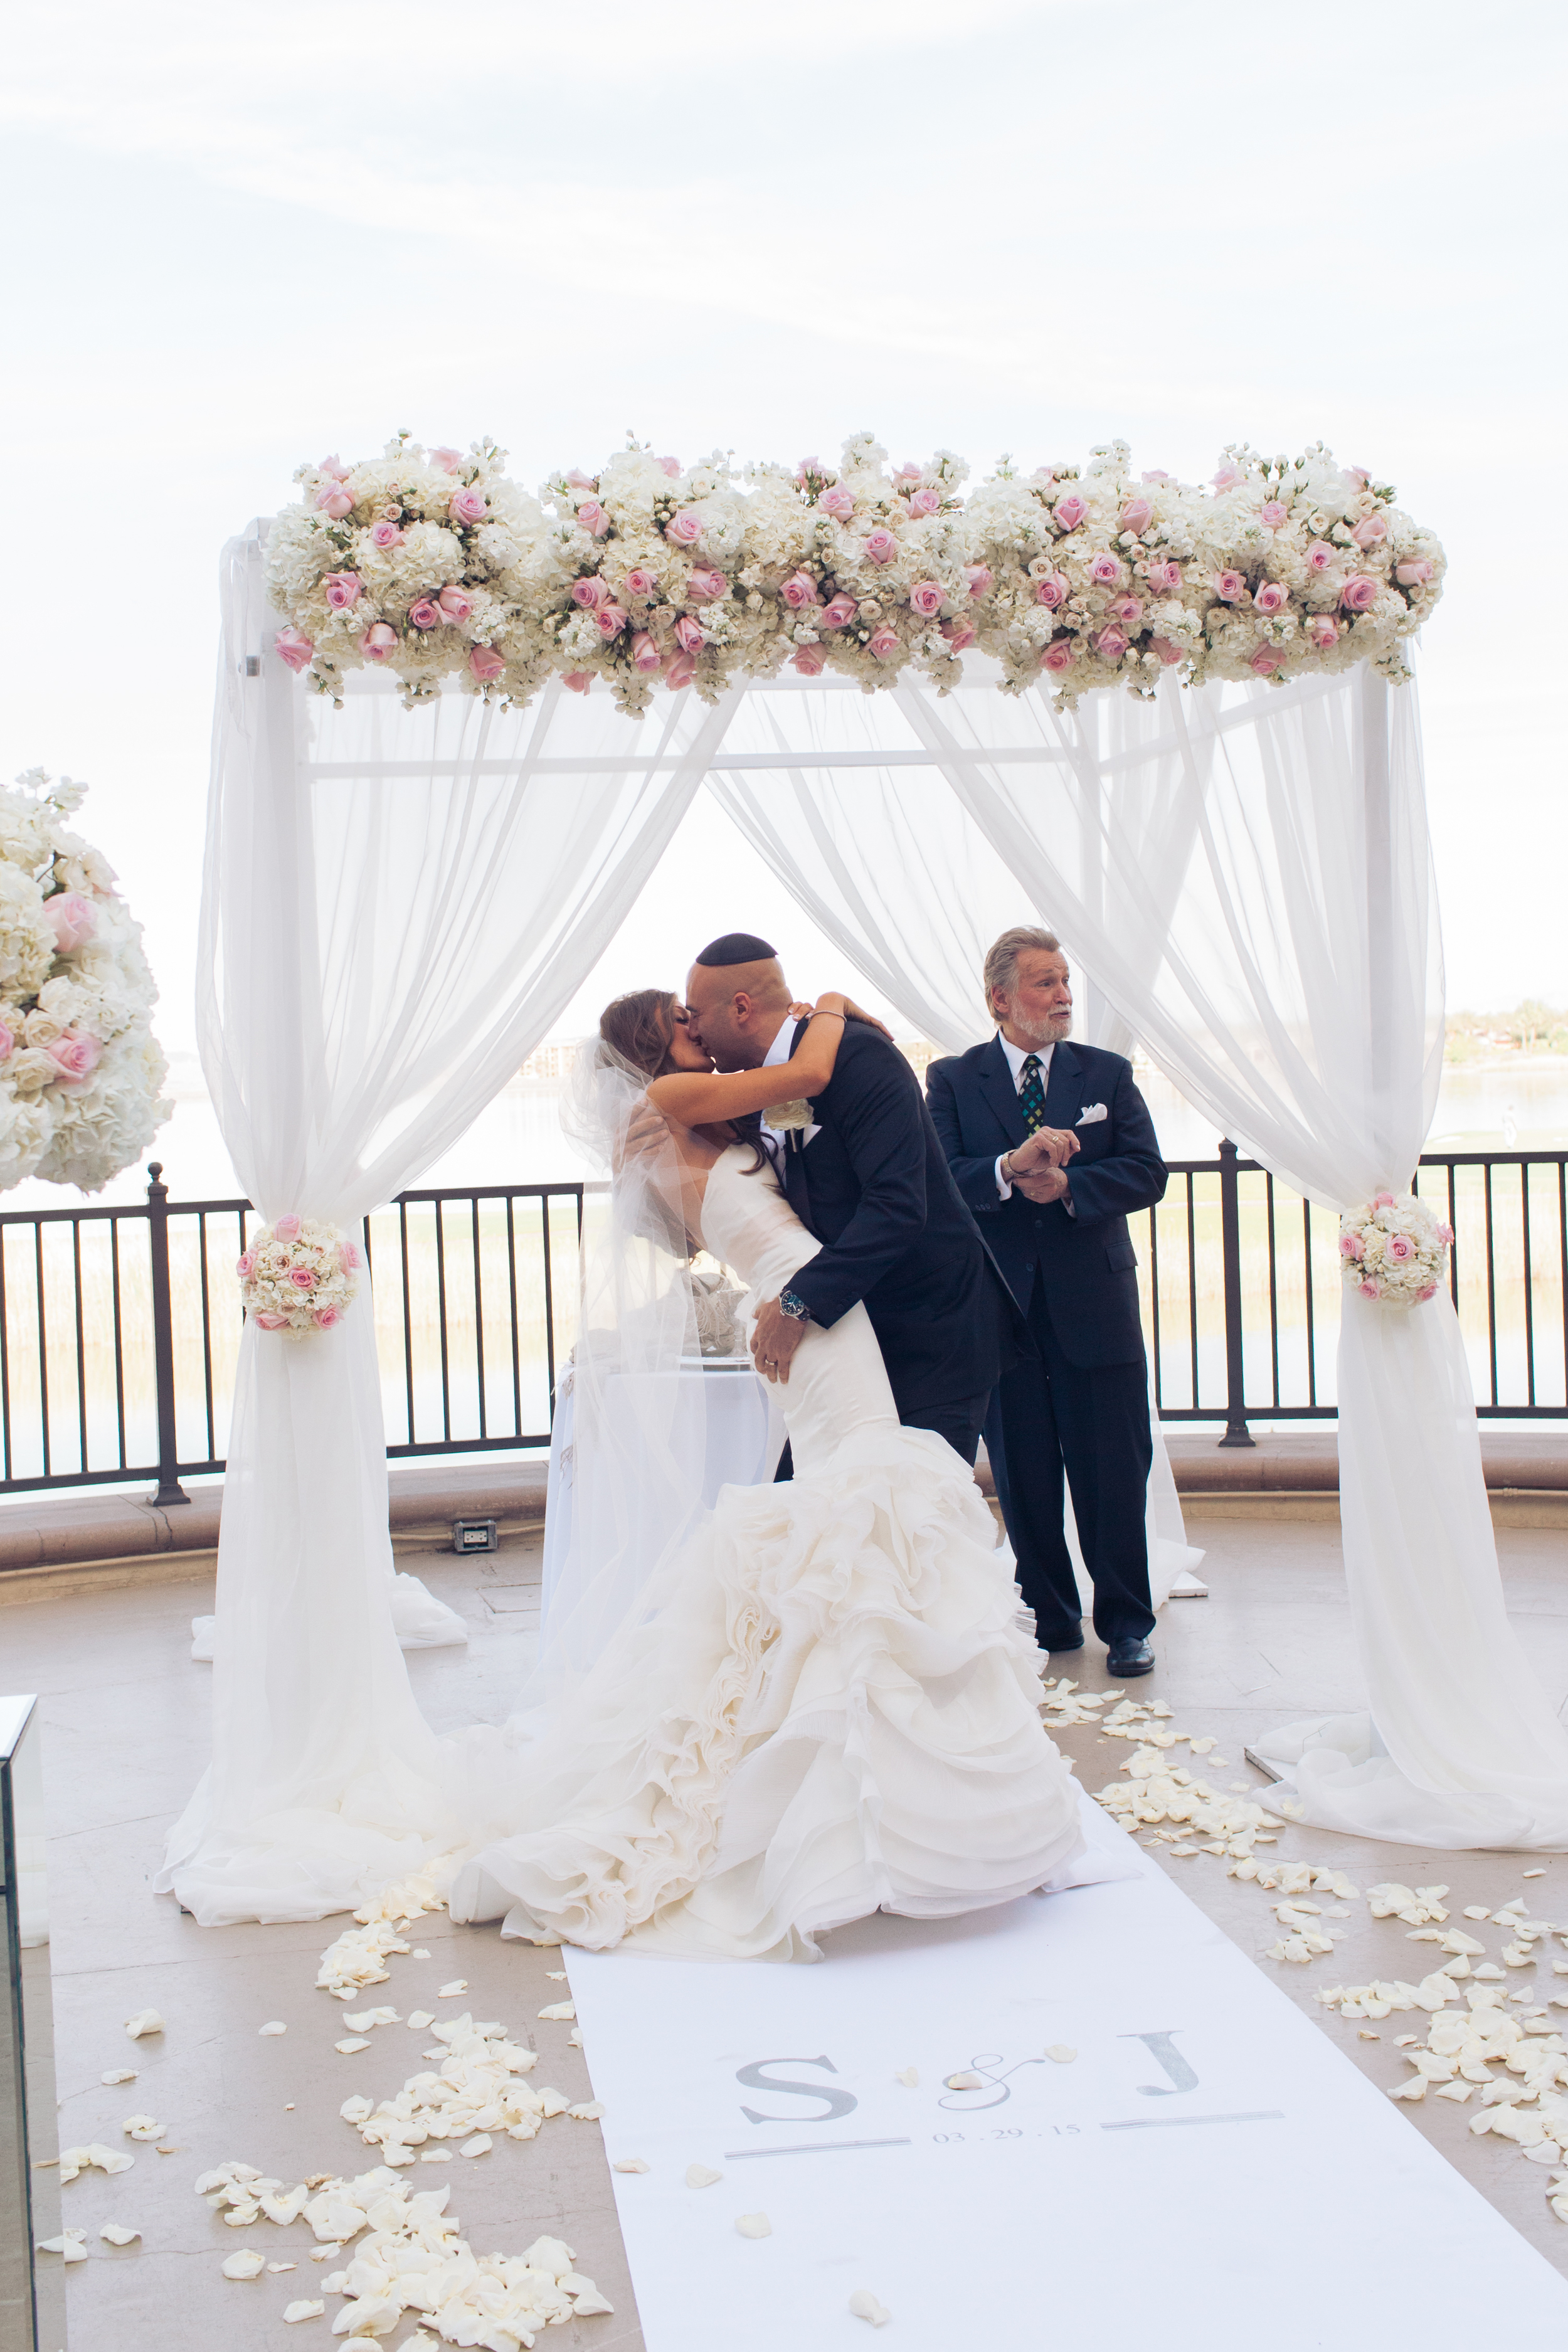 The couple's dramatic first kiss had the groom dipping the bride in front of their guests and Rabbi Mel Hecht.    Las Vegas Wedding Planner Andrea Eppolito   Wedding at Lake Las Vegas   White and Blu  sh and Grey Wedding   Luxury Wedding Las Vegas